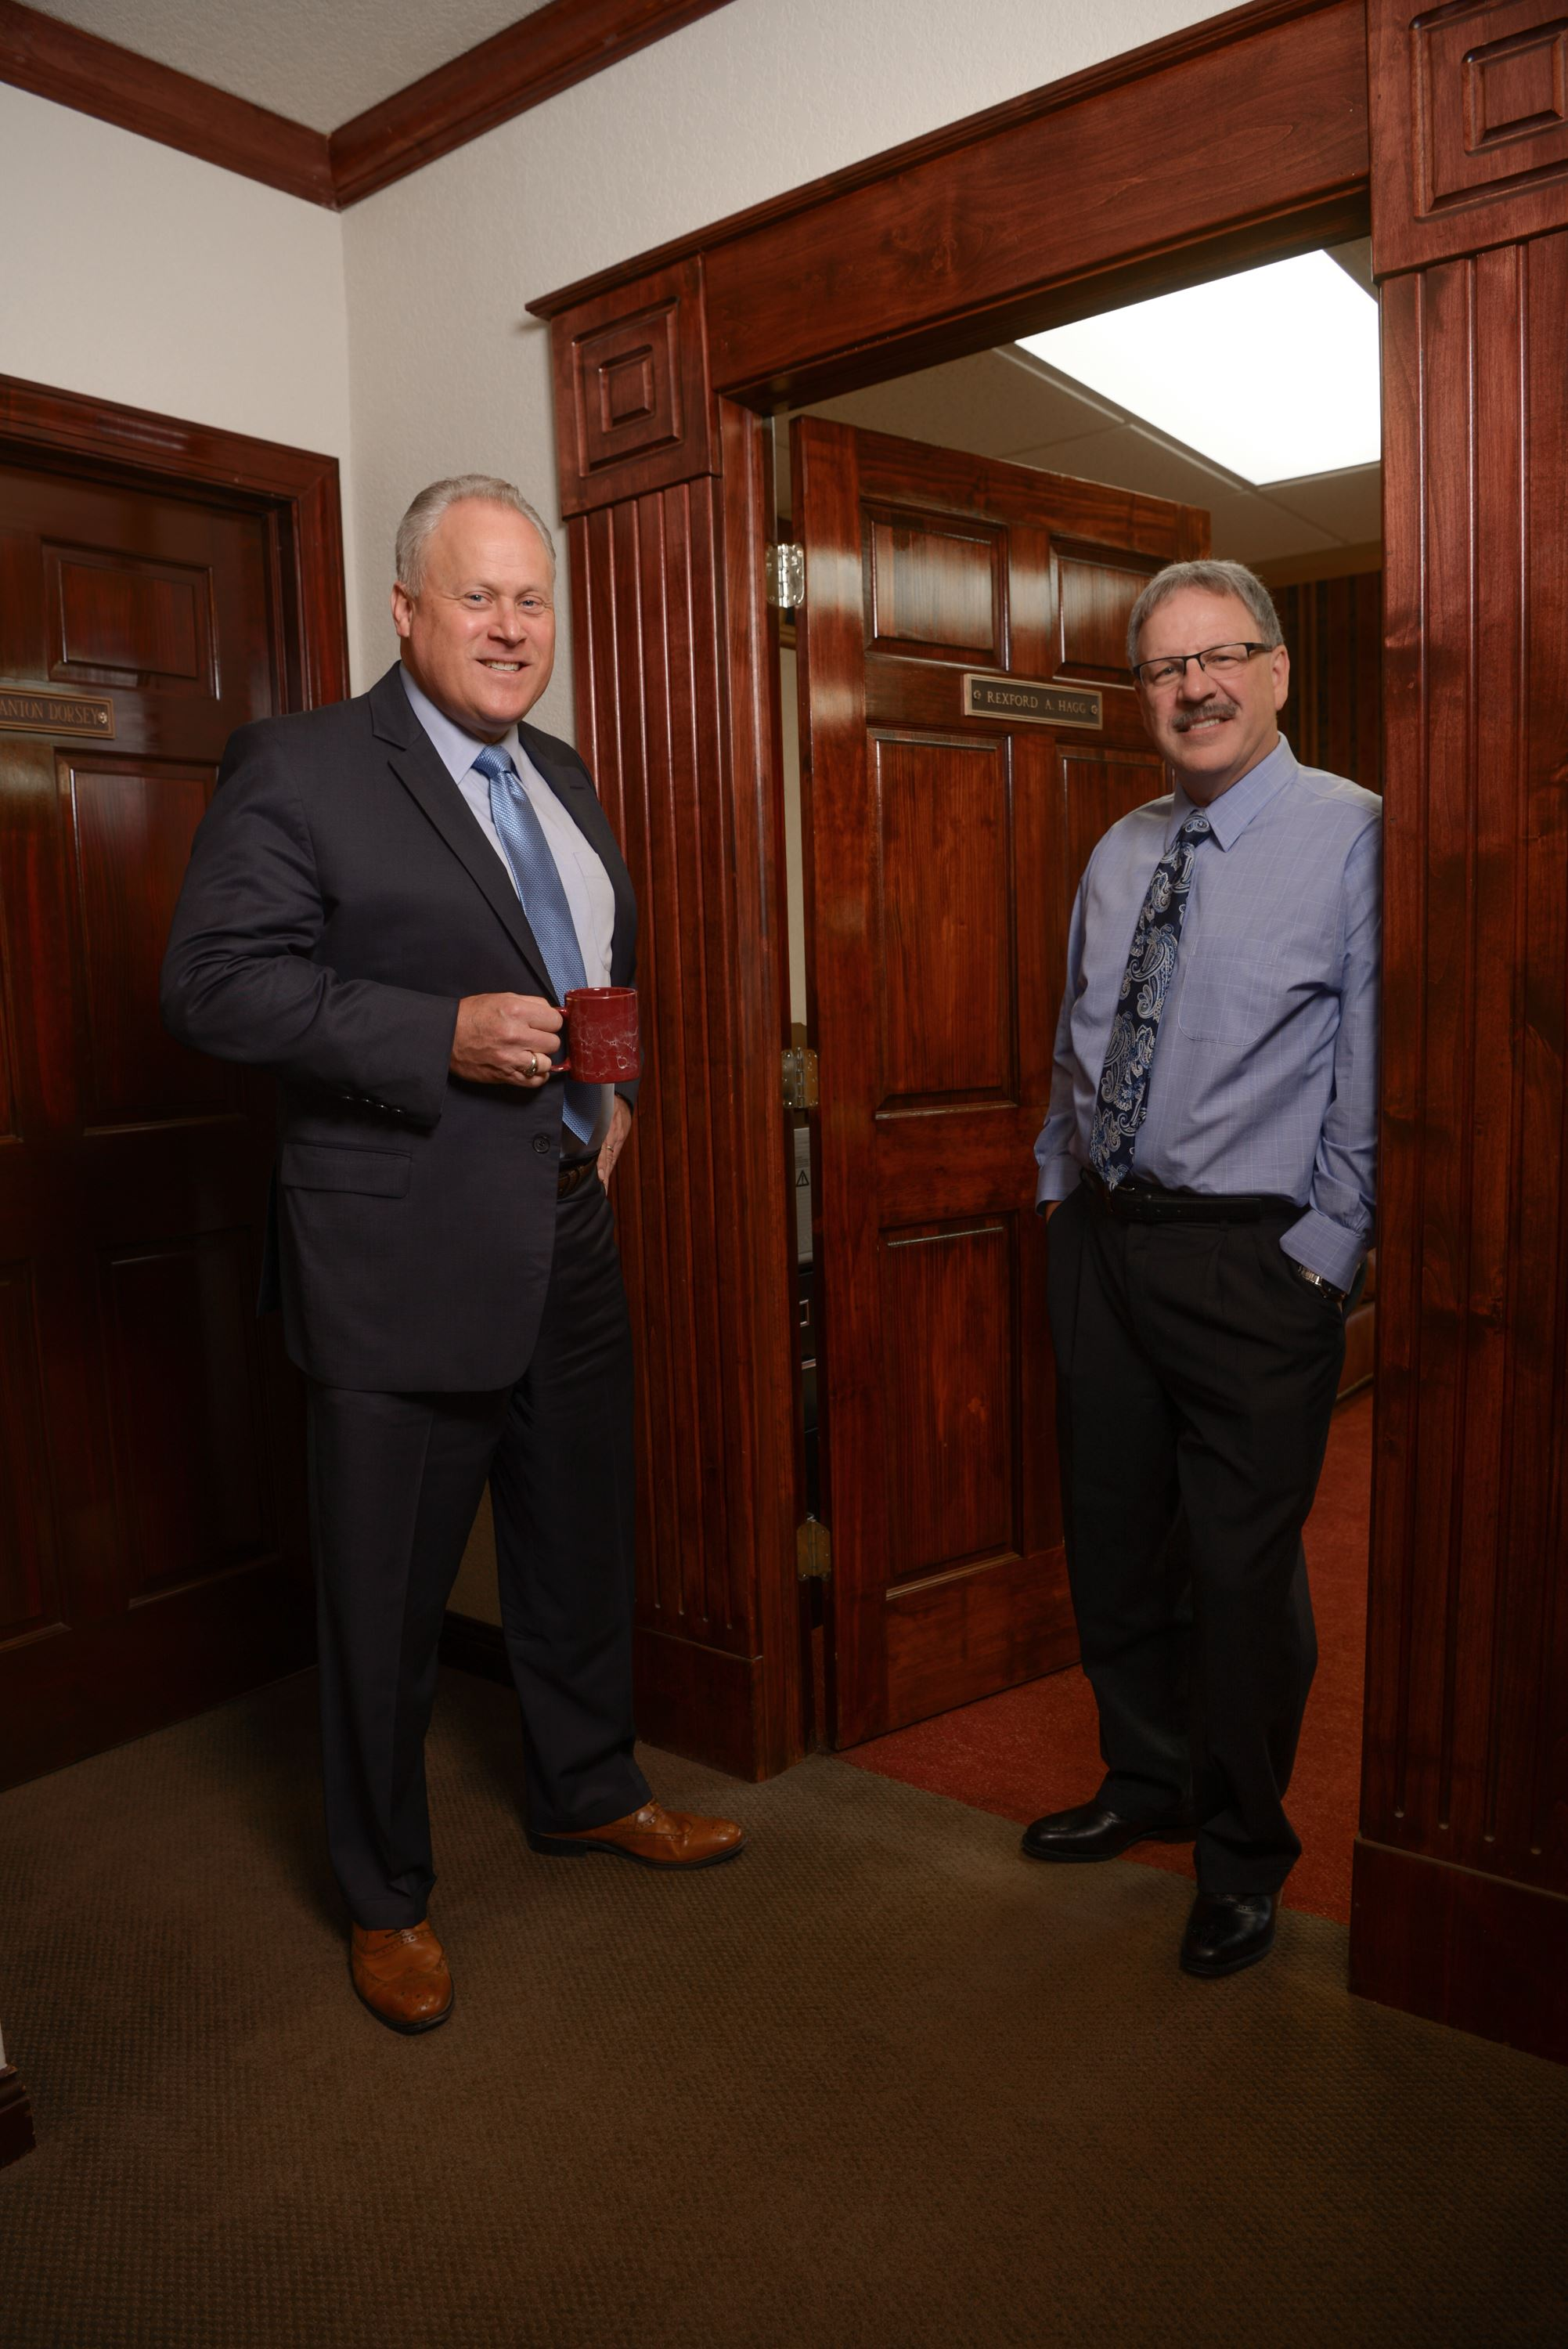 Rapid City Product Liability Attorneys Rexford A. Hagg and John S. Dorsey